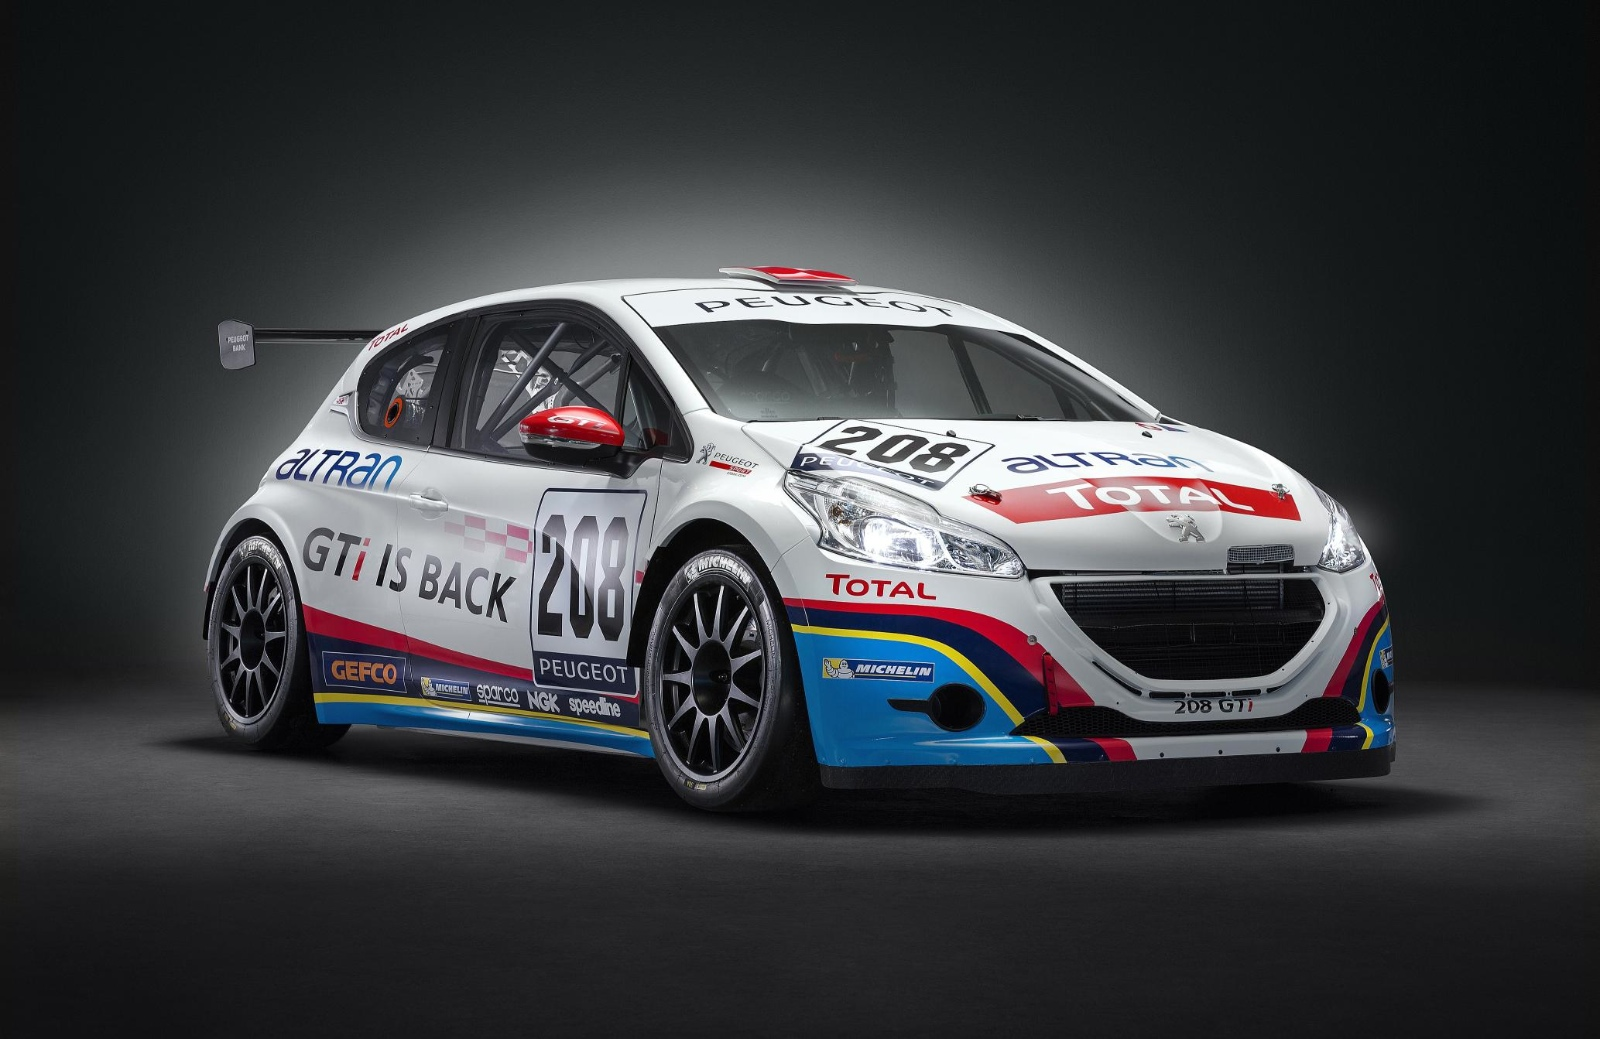 peugeot 208 gti to race at nurburgring autoevolution. Black Bedroom Furniture Sets. Home Design Ideas